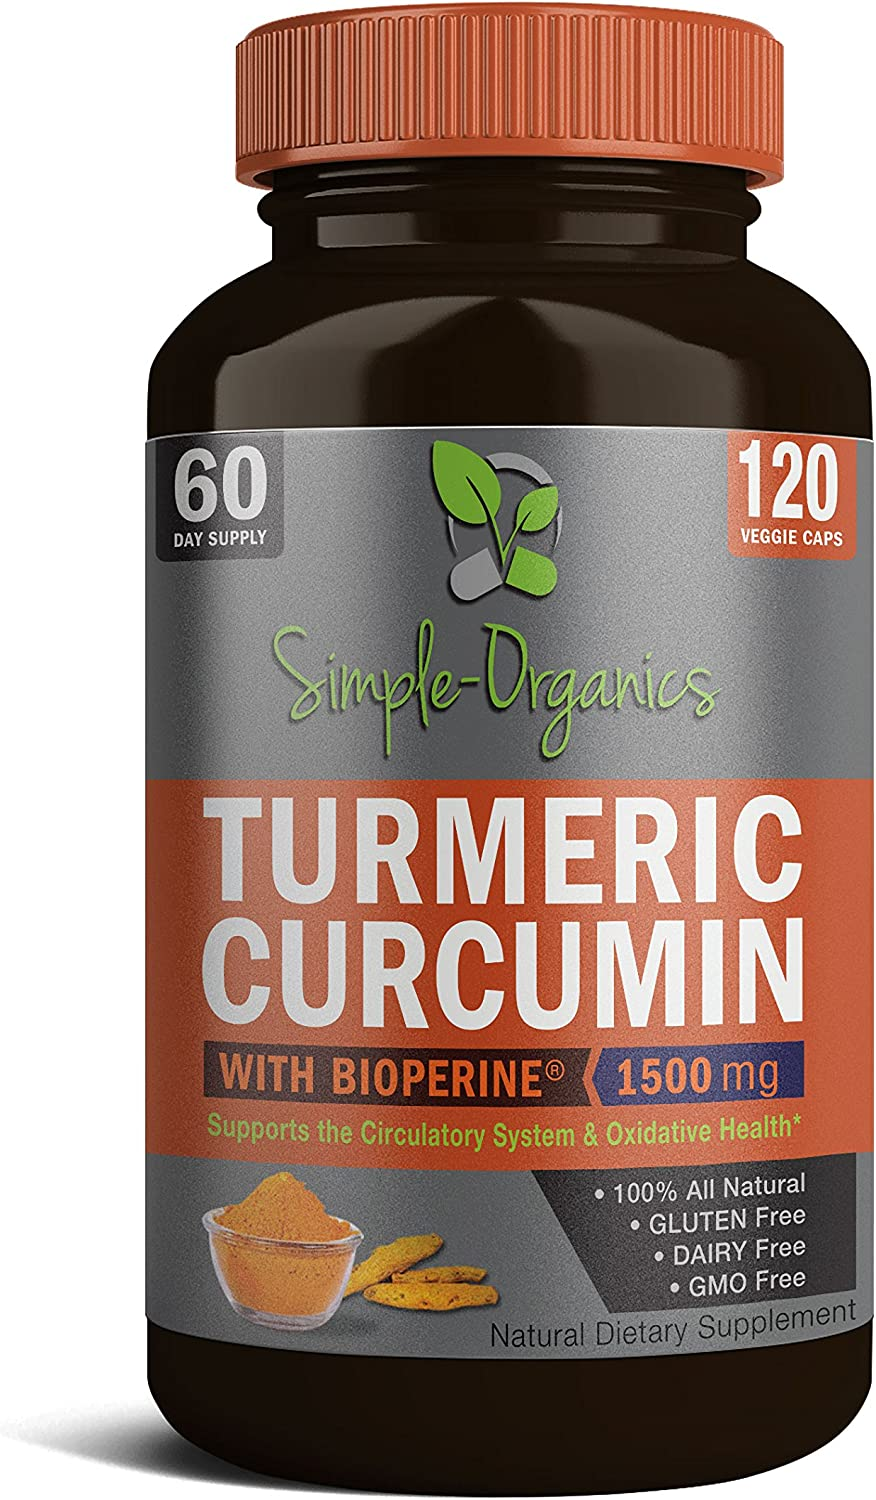 Turmeric Curcumin with Bioperine 1500mg Promotes Anti-Inflammatory, Antioxidant Anti-Aging Supplement. Joint Pain Relief 100 All Natural Gluten Free Non-GMO Made in USA